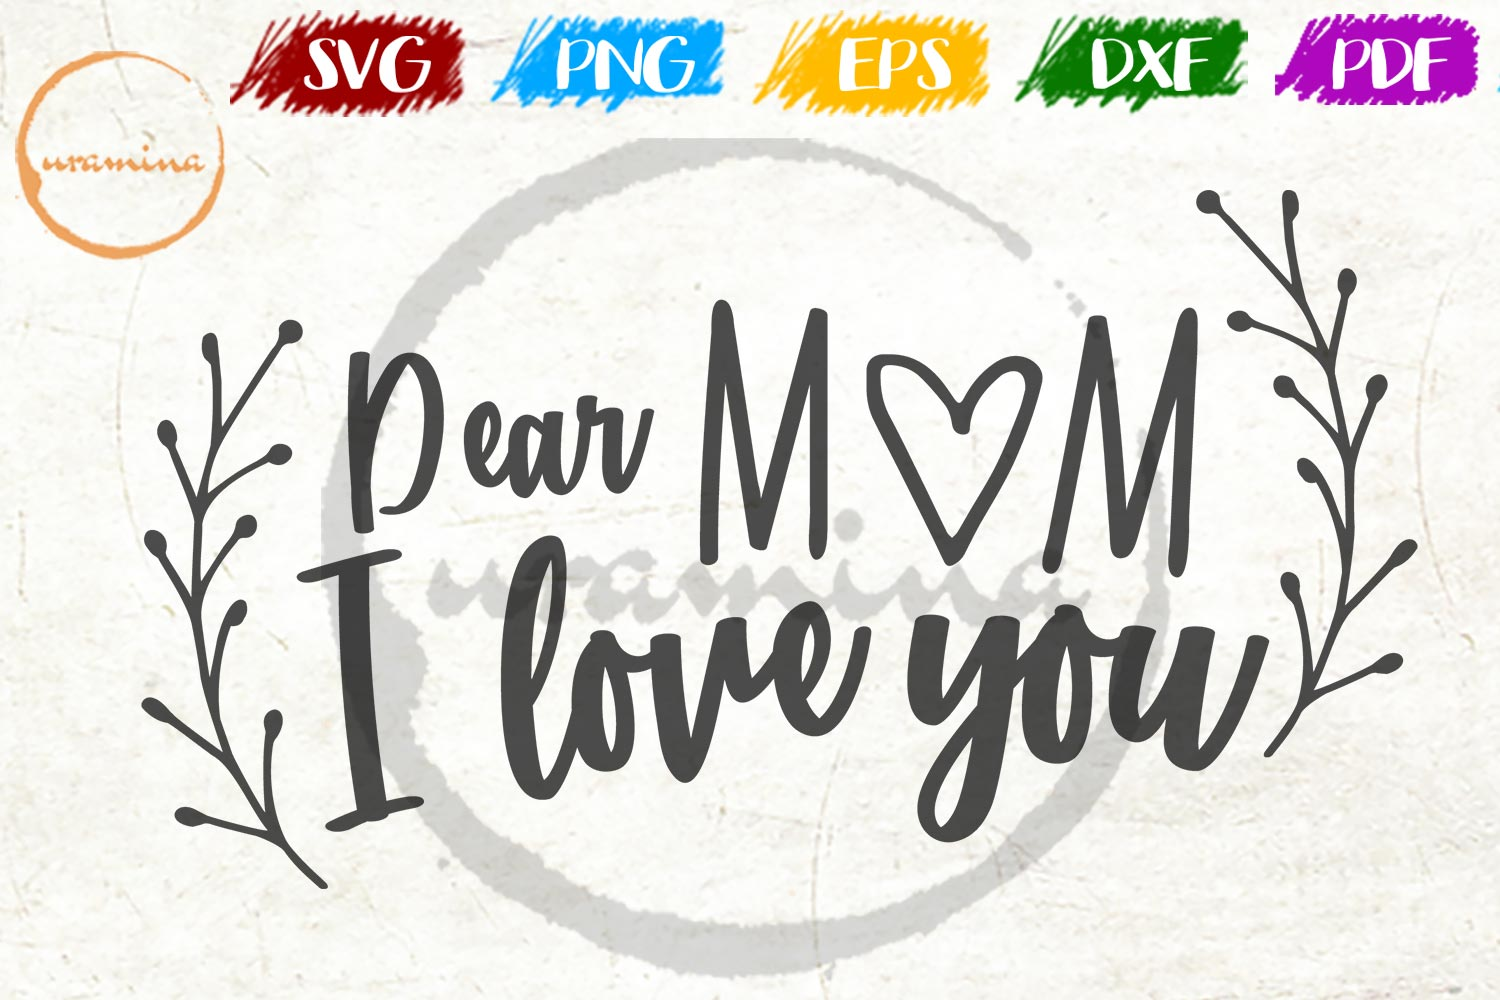 Download Free Dear Mom I Love You Graphic By Uramina Creative Fabrica for Cricut Explore, Silhouette and other cutting machines.